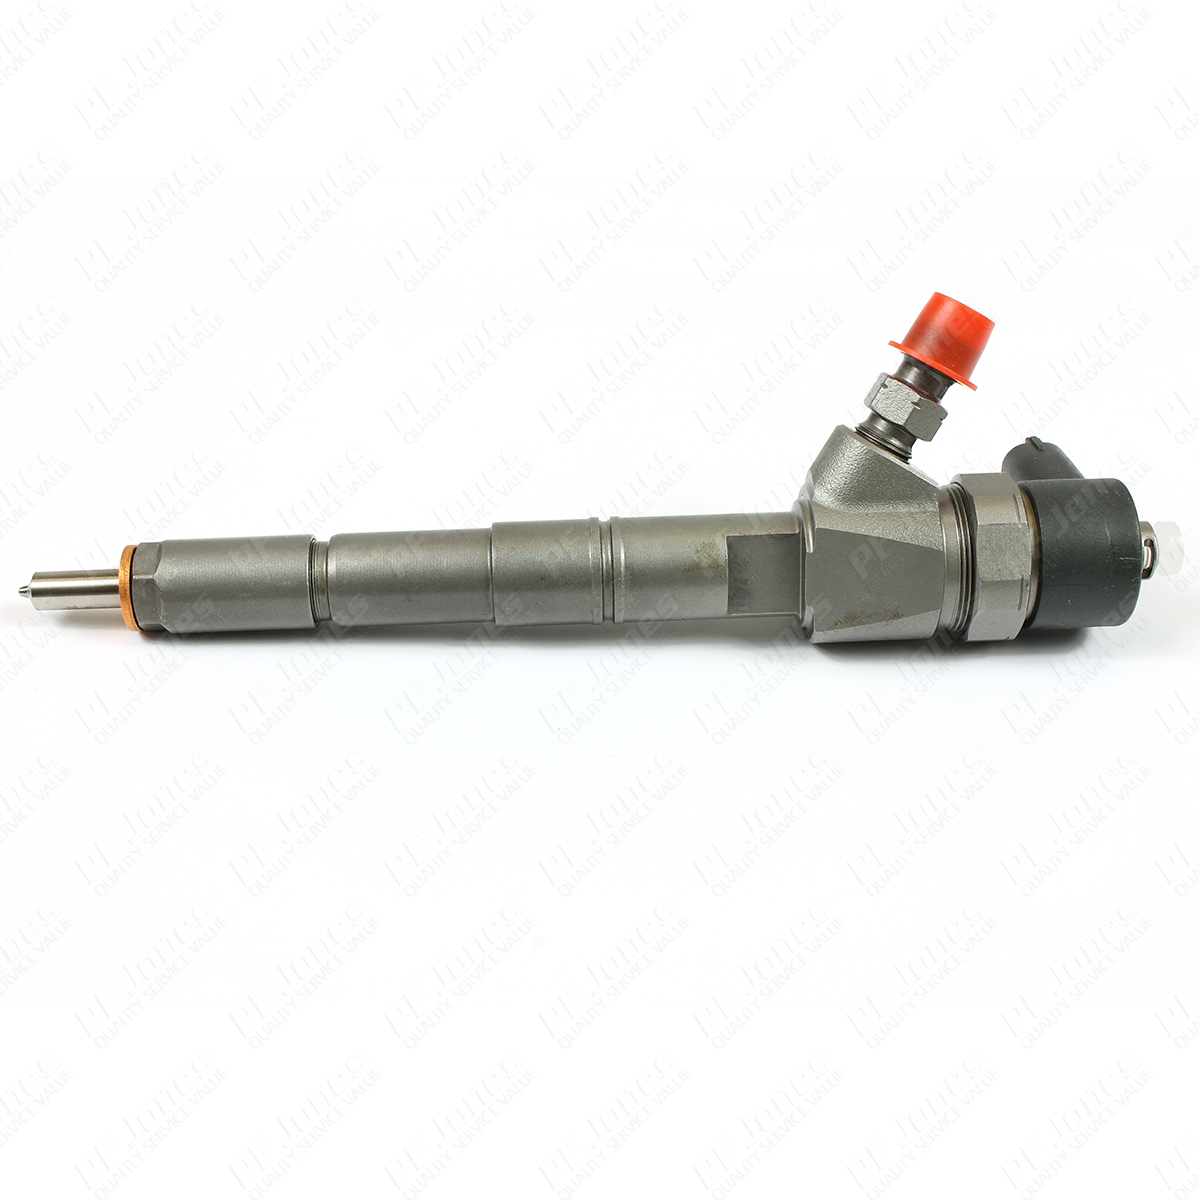 Vauxhall Astra 1.9 CDTI/GTC 2004-2010 Reconditioned Bosch Diesel Injector 0445110243